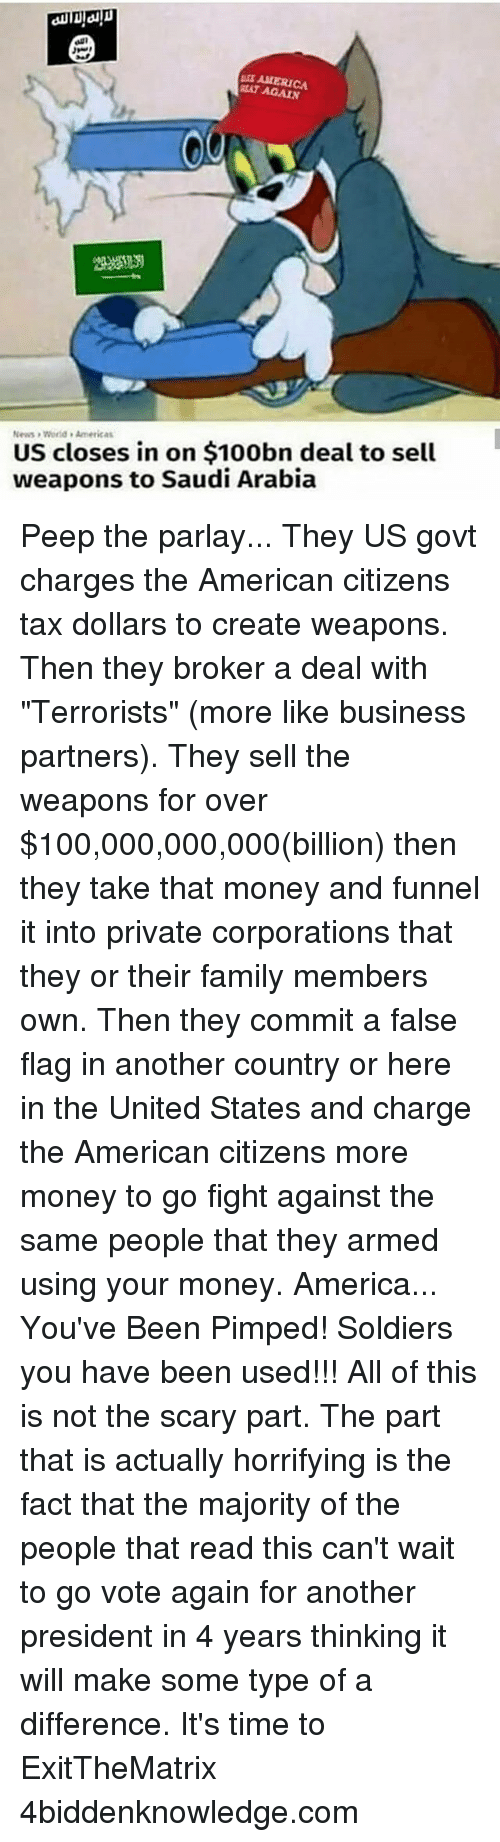 """America, Anaconda, and Family: AALERICA  RAT News Americas  US closes in on $100bn deal to sell  weapons to Saudi Arabia Peep the parlay... They US govt charges the American citizens tax dollars to create weapons. Then they broker a deal with """"Terrorists"""" (more like business partners). They sell the weapons for over $100,000,000,000(billion) then they take that money and funnel it into private corporations that they or their family members own. Then they commit a false flag in another country or here in the United States and charge the American citizens more money to go fight against the same people that they armed using your money. America... You've Been Pimped! Soldiers you have been used!!! All of this is not the scary part. The part that is actually horrifying is the fact that the majority of the people that read this can't wait to go vote again for another president in 4 years thinking it will make some type of a difference. It's time to ExitTheMatrix 4biddenknowledge.com"""